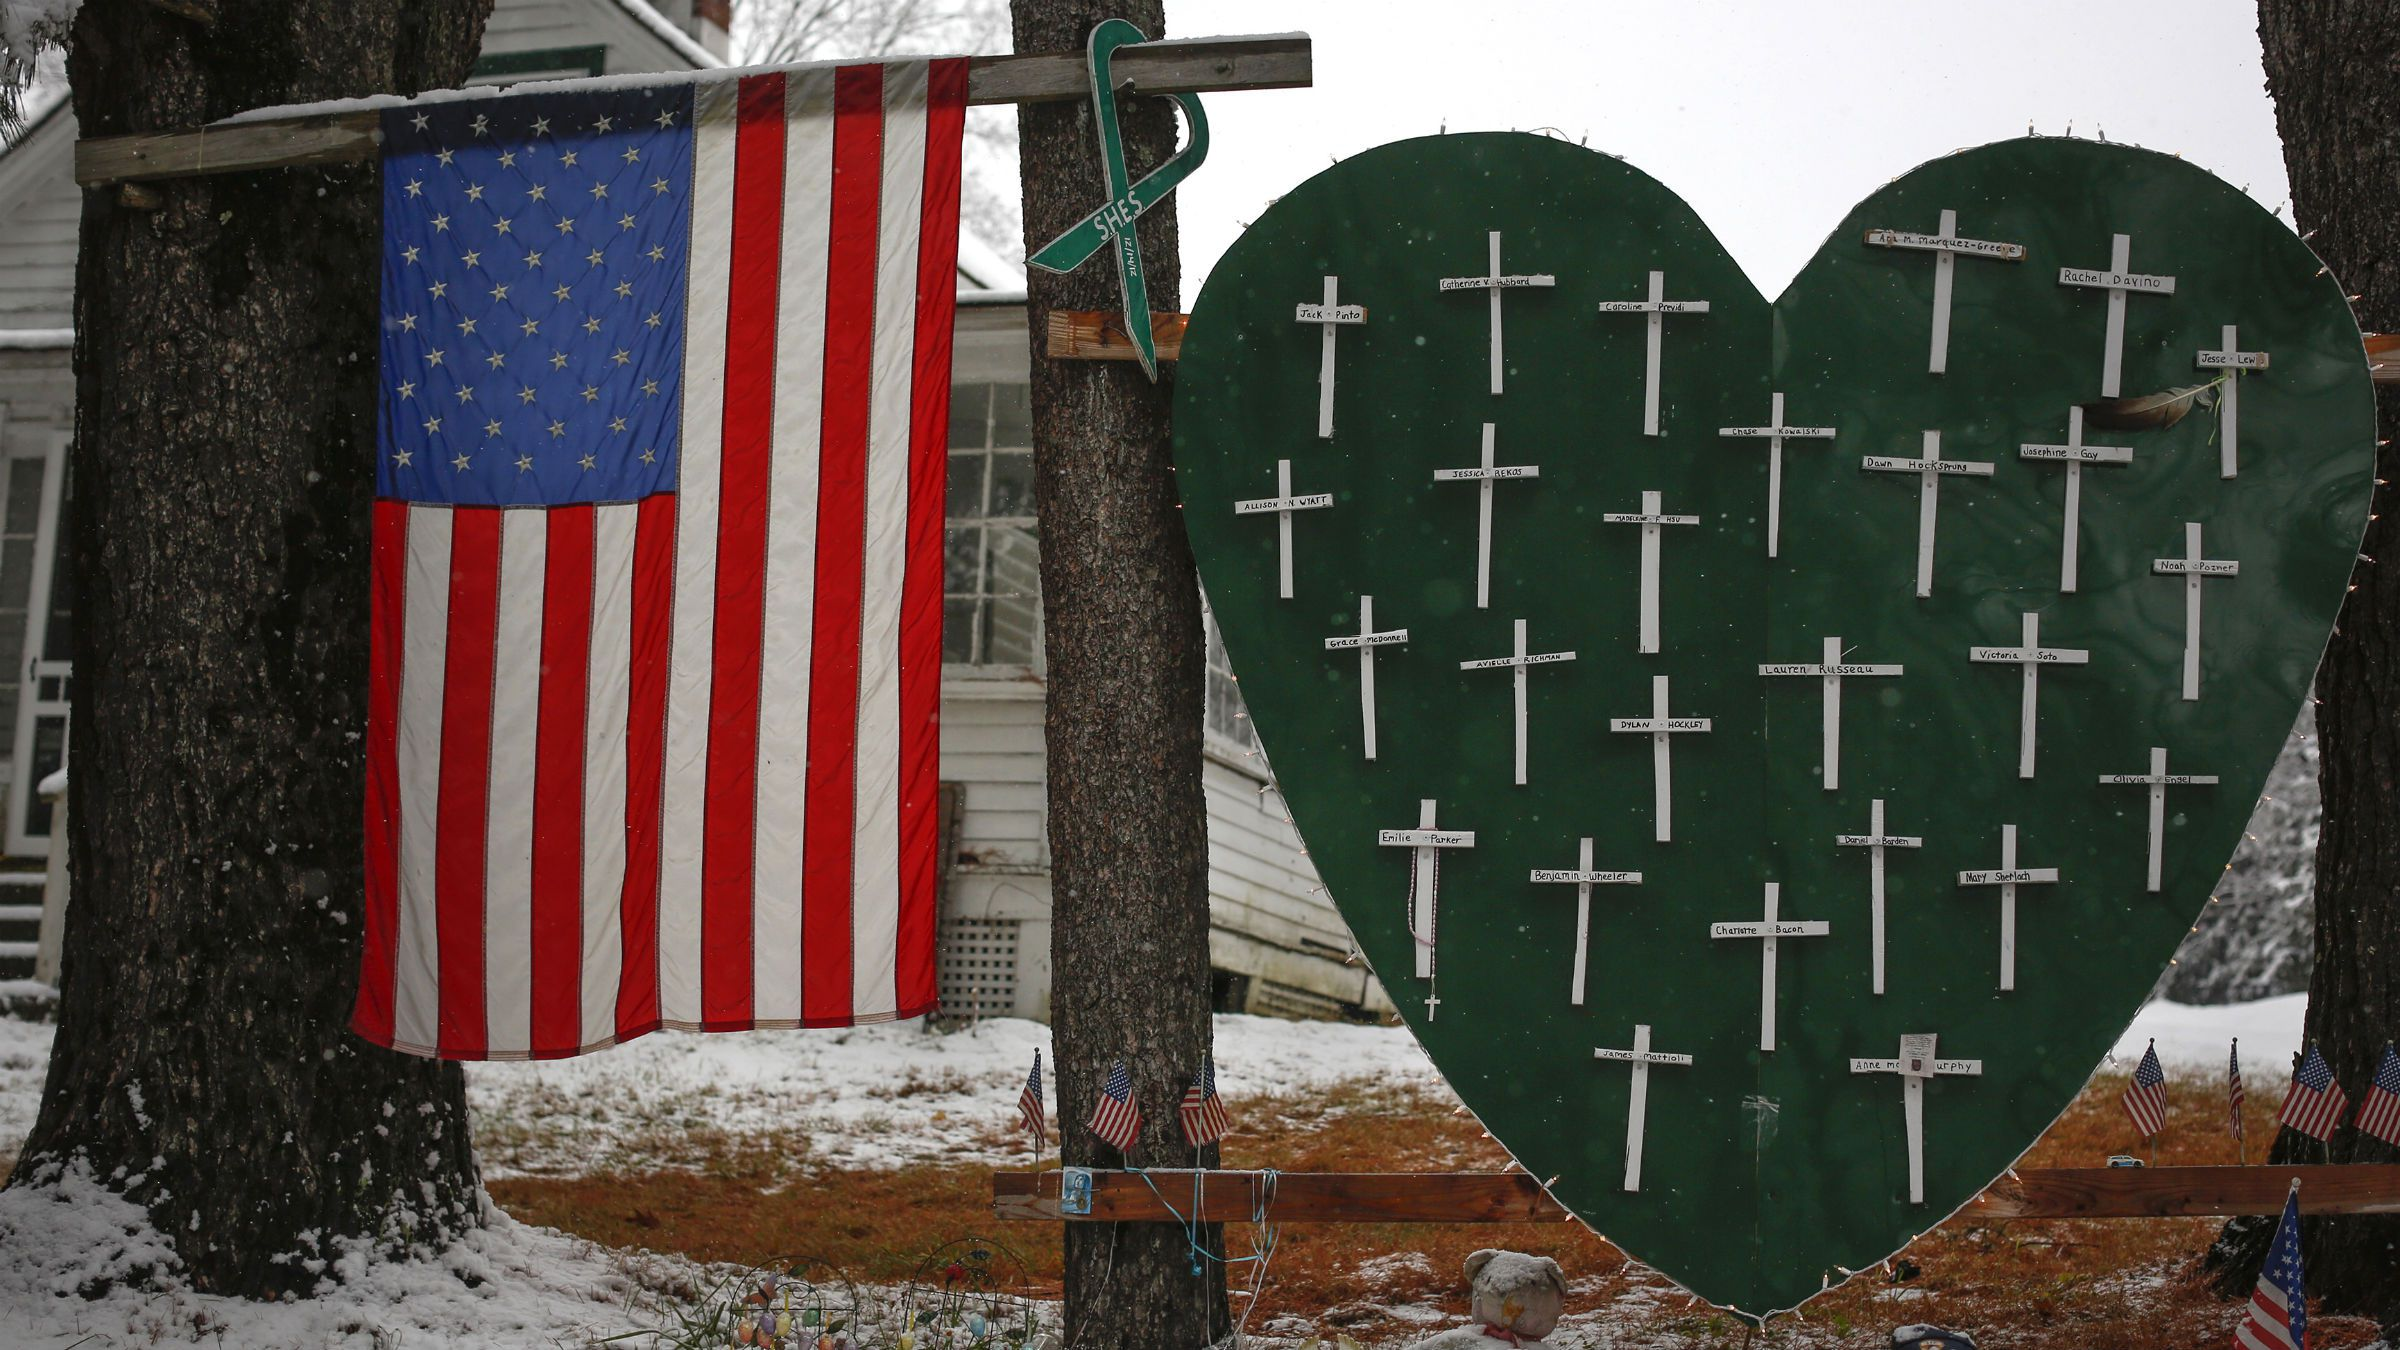 2013A memorial honoring the victims killed in the Sandy Hook Elementary School shooting is seen outside a home in Sandy Hook, Connecticut December 10, 2013. The Connecticut town of Newtown on Monday asked for privacy and a restrained media presence ahead of the anniversary of the shooting that killed 20 children and six adults at Sandy Hook Elementary School.